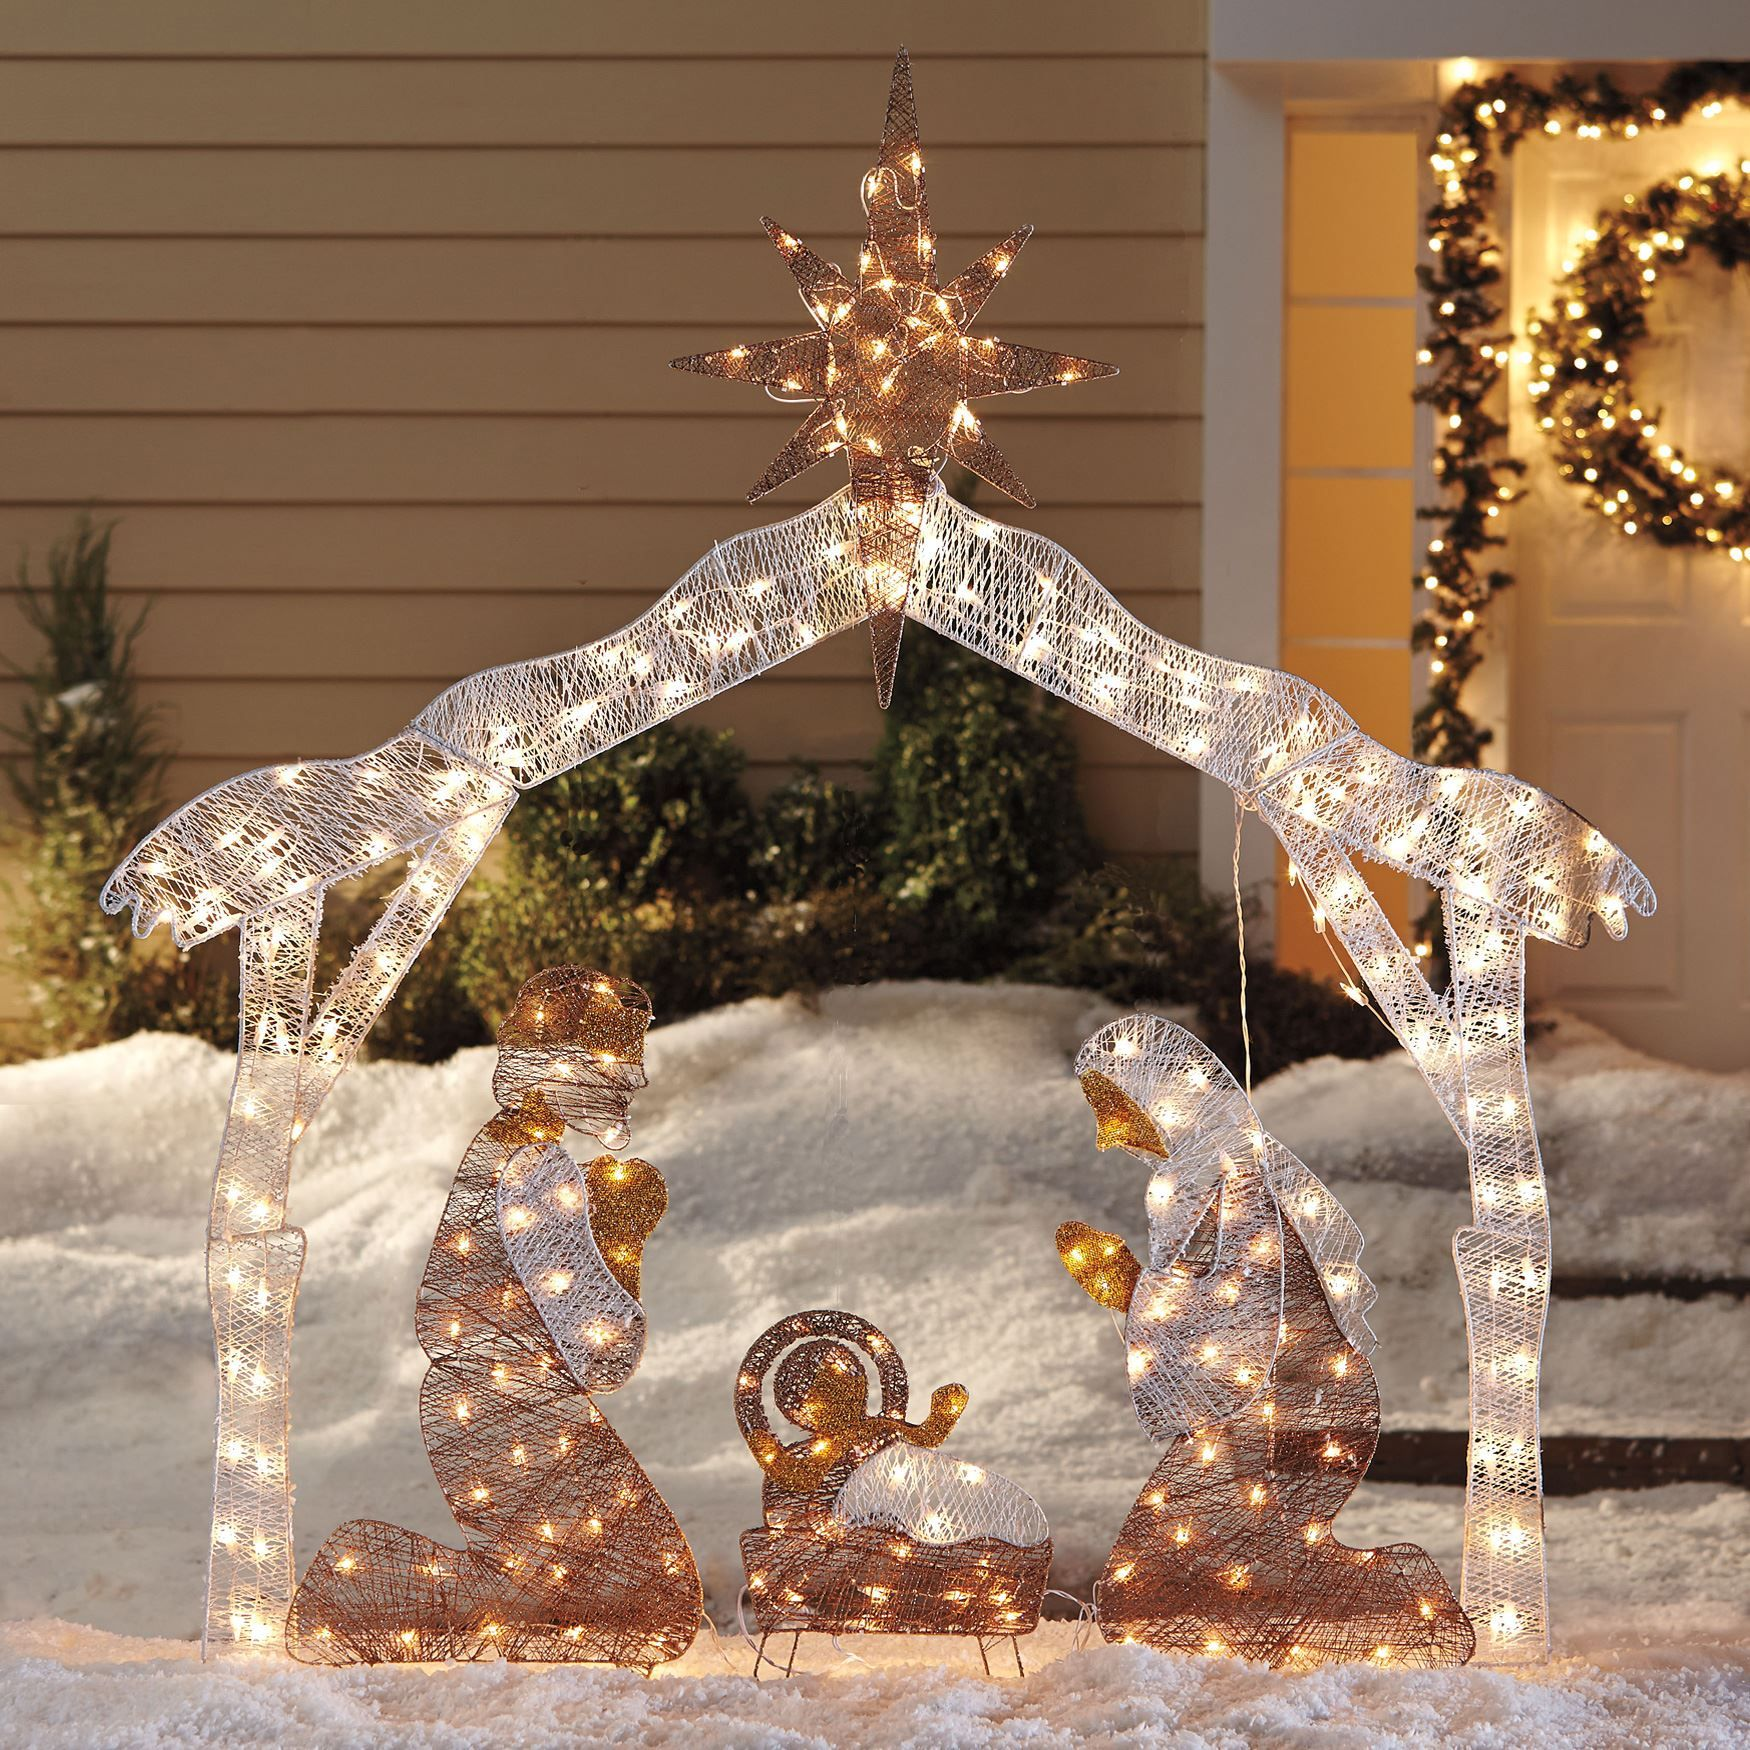 Our stunning outdoor nativity set expresses the true joy of shop for crystal splendor outdoor nativity scene and more outdoor christmas lighted decorations on brylanehome mozeypictures Choice Image